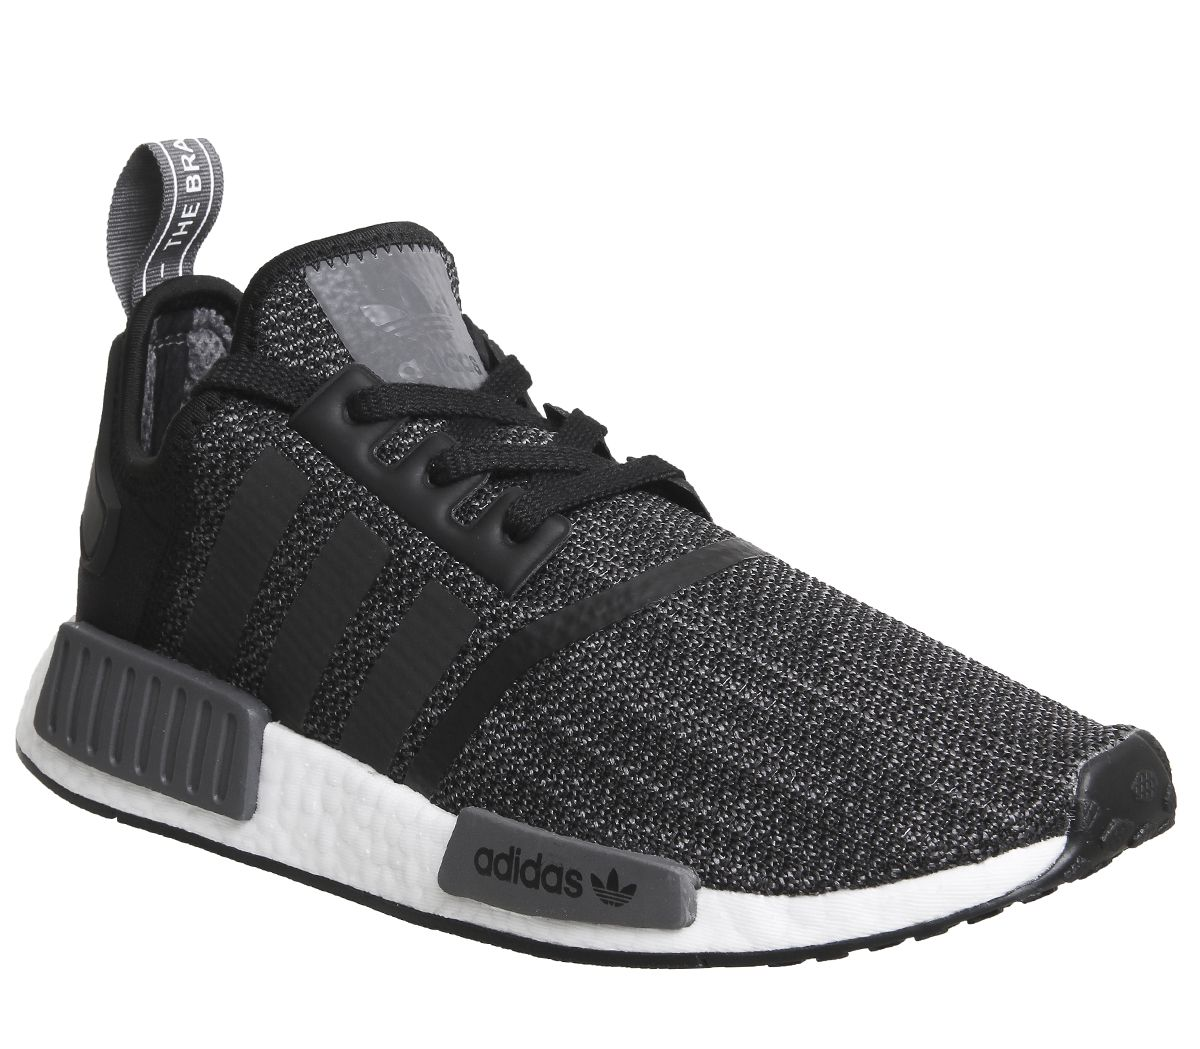 9ee88f7ed adidas Nmd R1 Trainers Core Black Grey White - His trainers